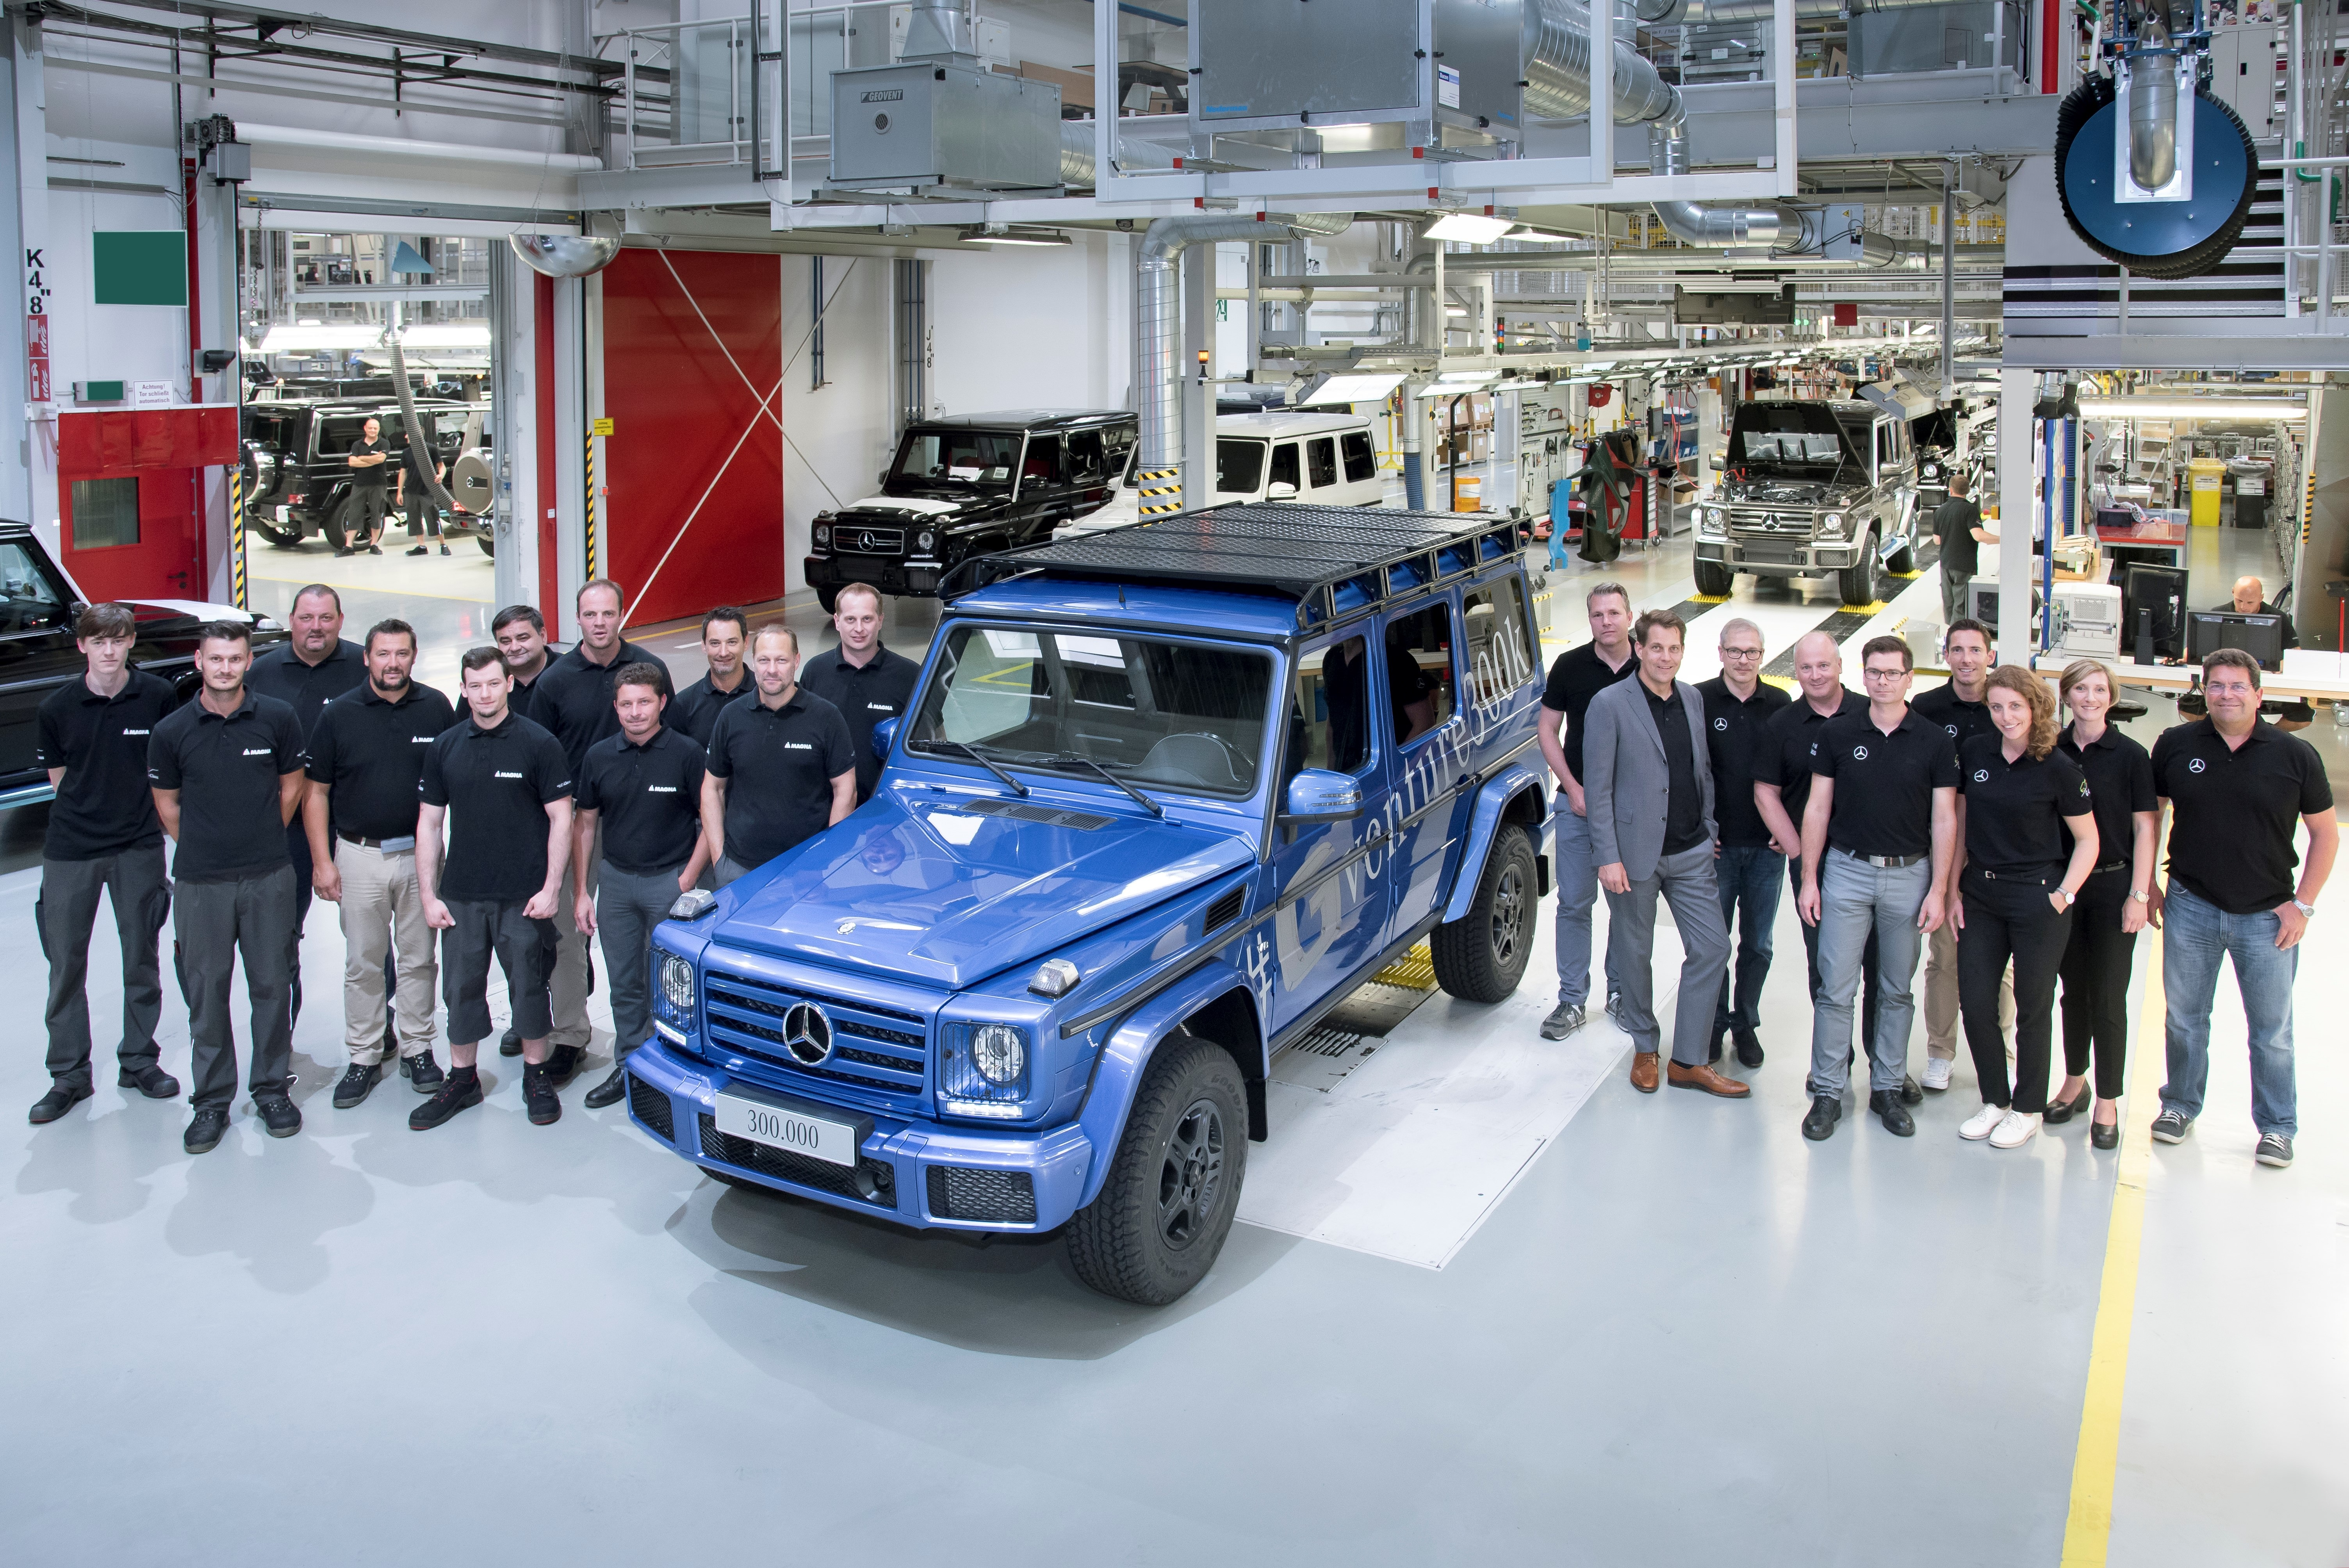 Mercedes-Benz. Production record - 300,000th G-Class rolls off production line